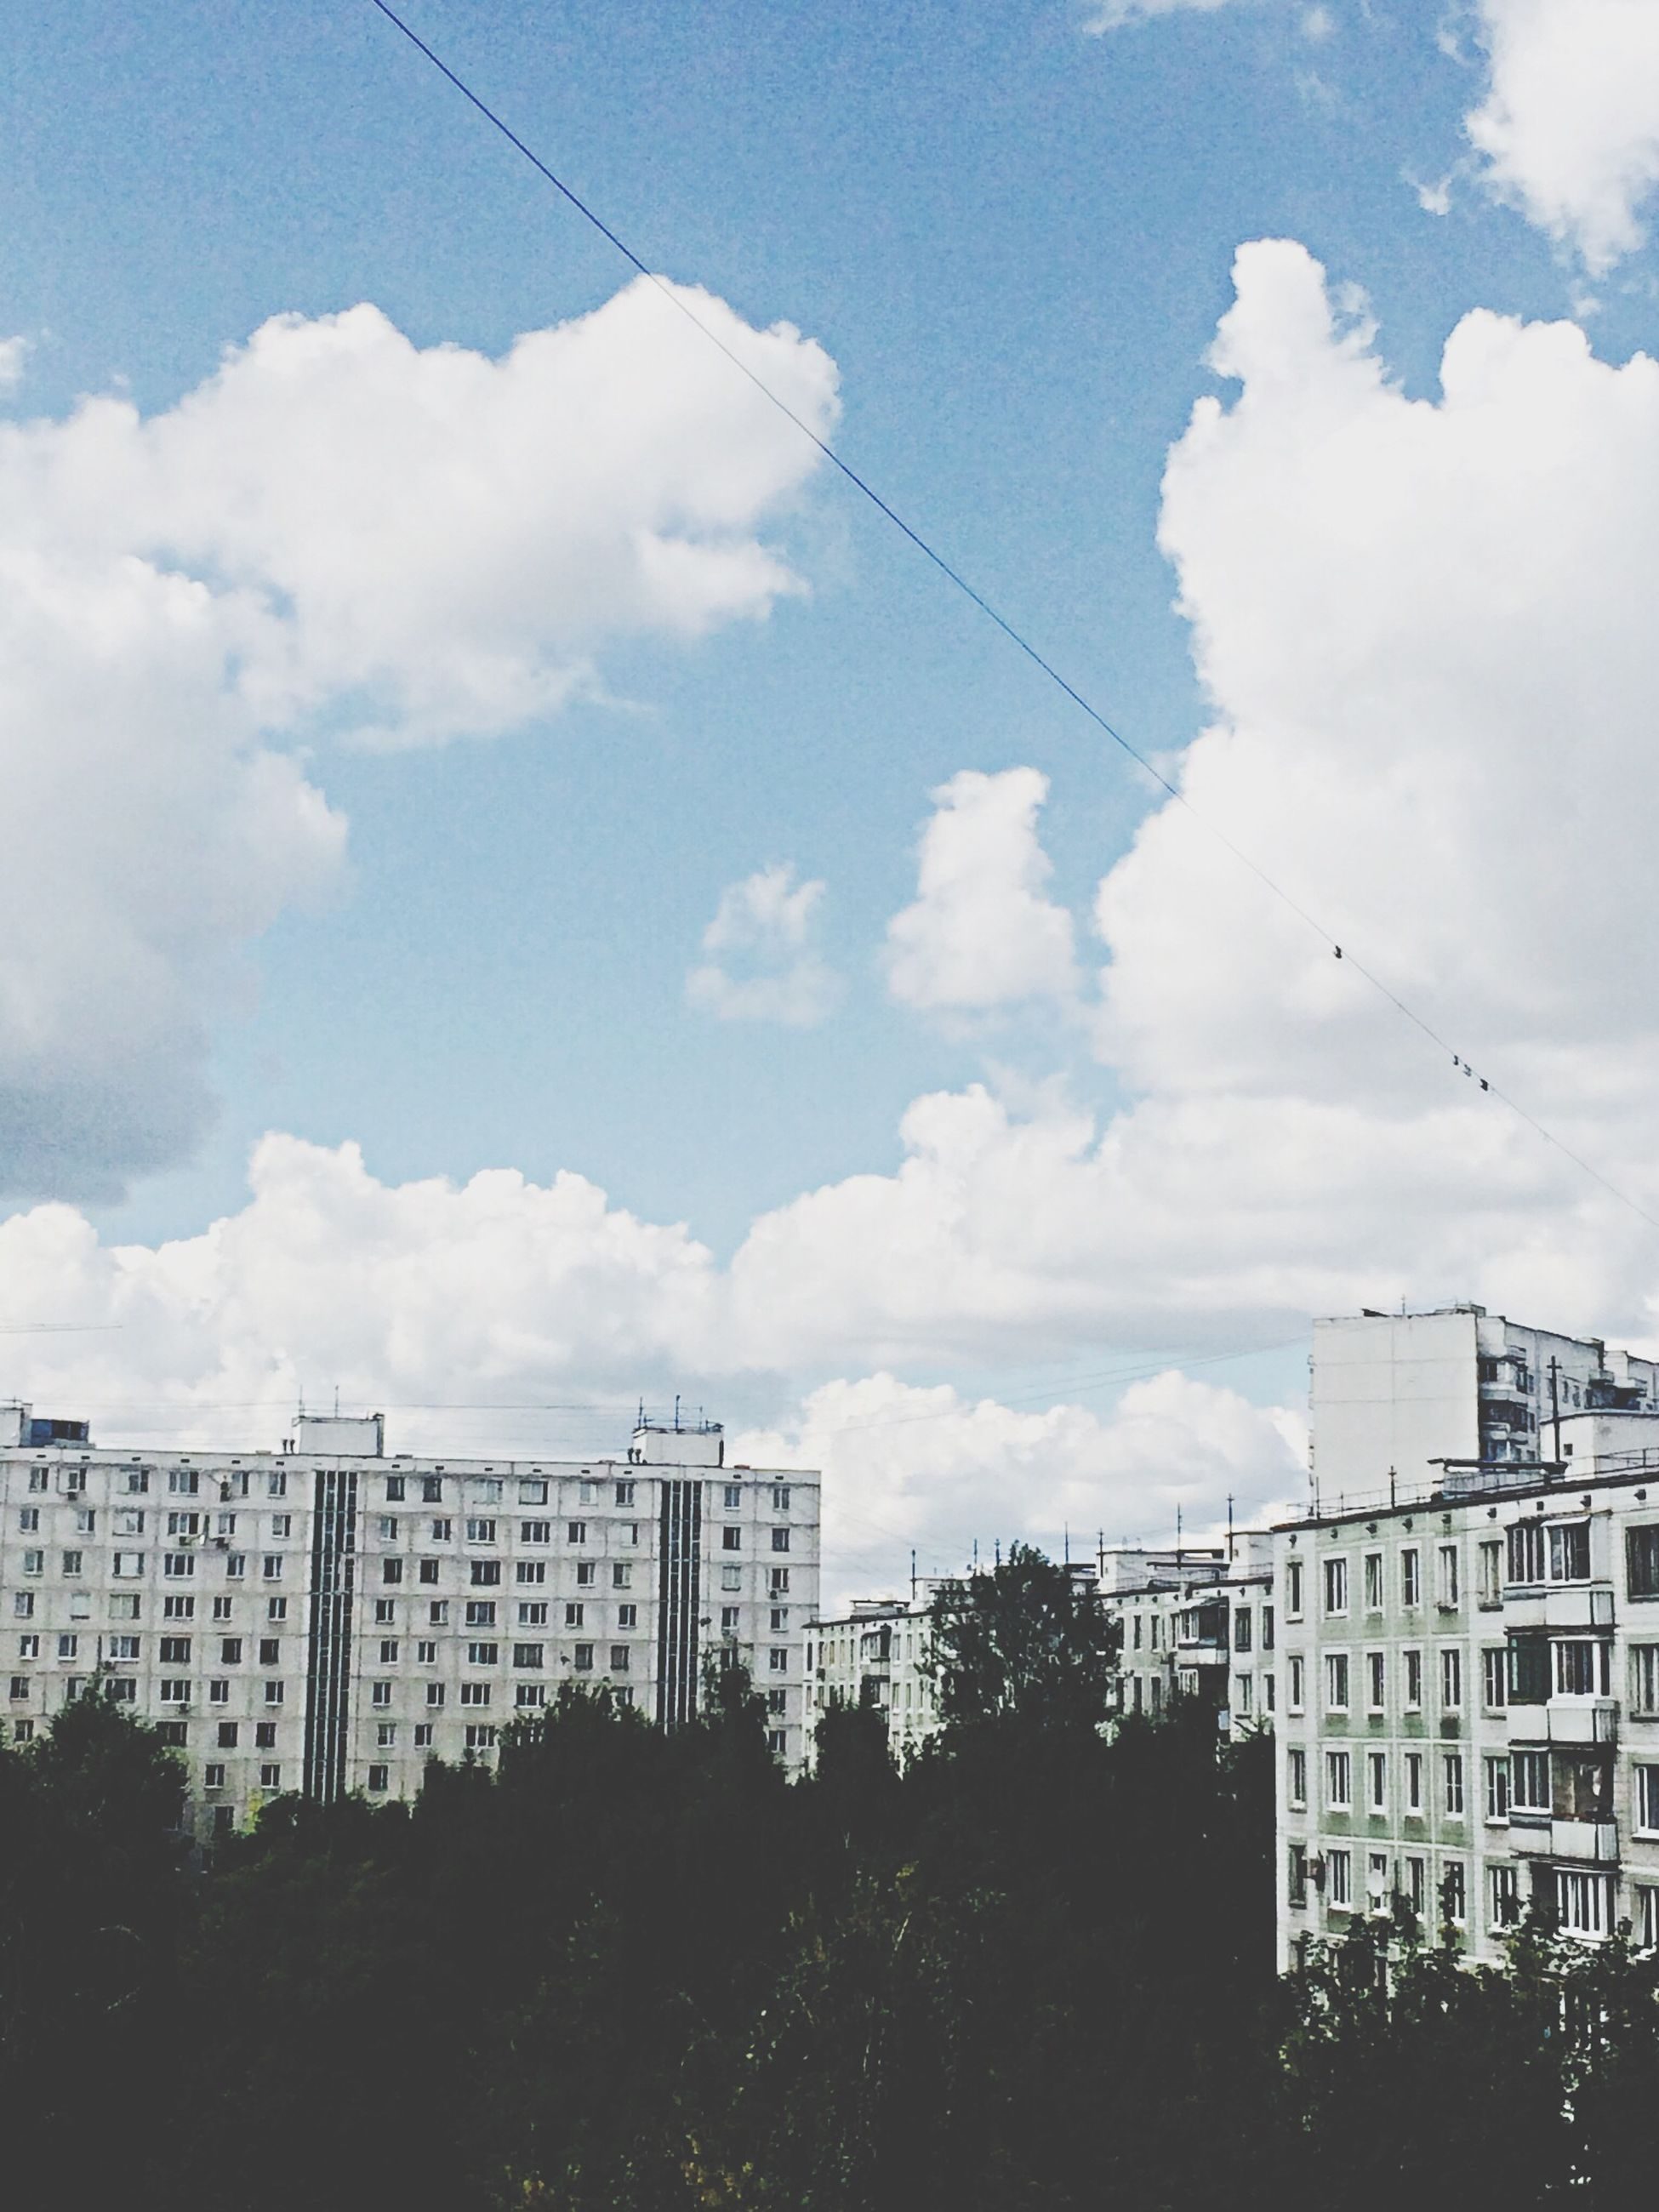 sky, architecture, building exterior, built structure, cloud - sky, low angle view, cloudy, cloud, building, city, day, outdoors, residential building, no people, tree, residential structure, house, nature, bird, overcast